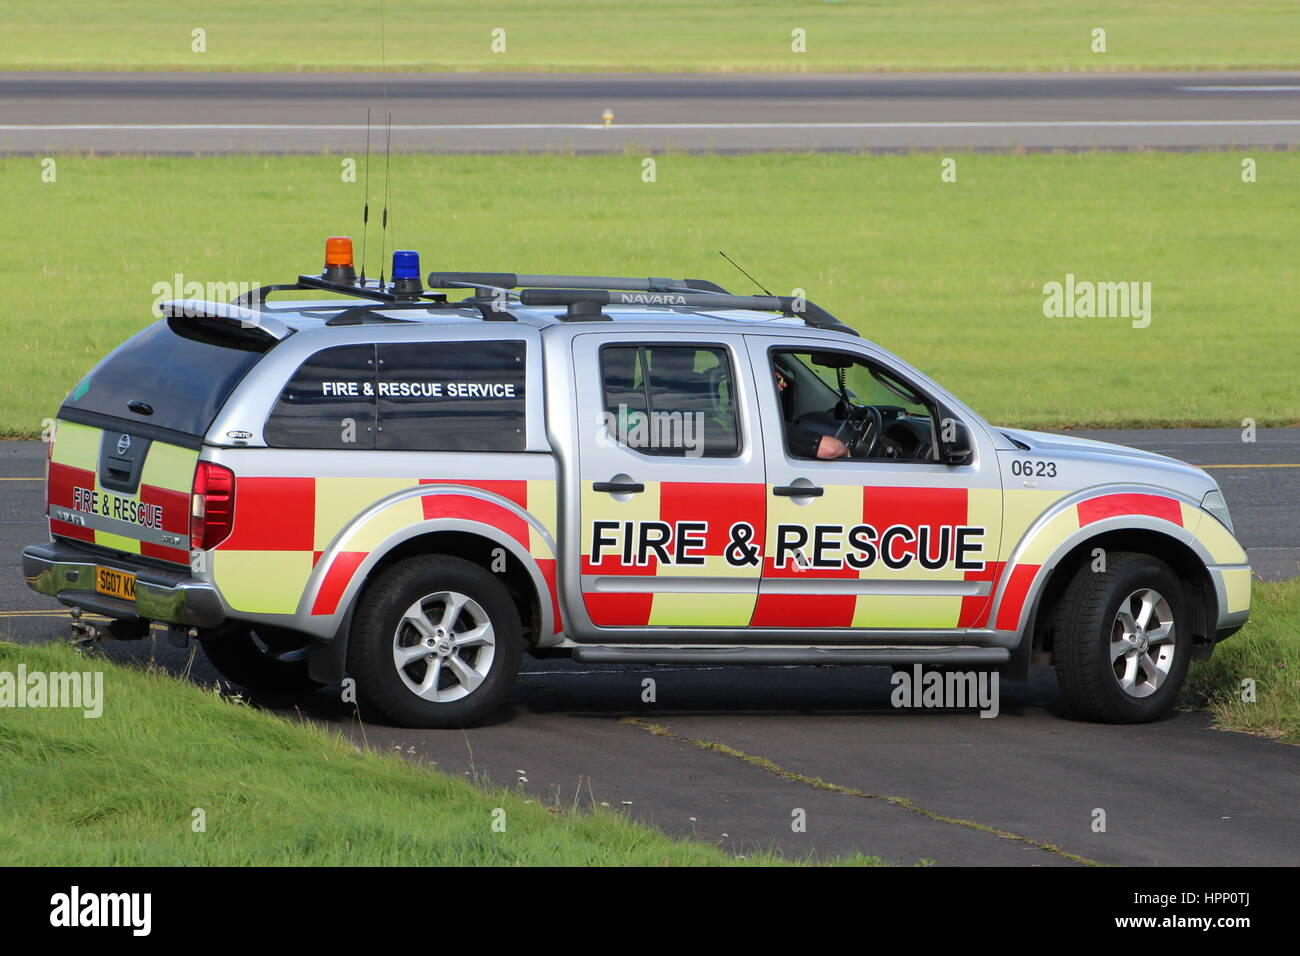 A nissan navara outlaw of the airfield fire rescue service at prestwick international airport